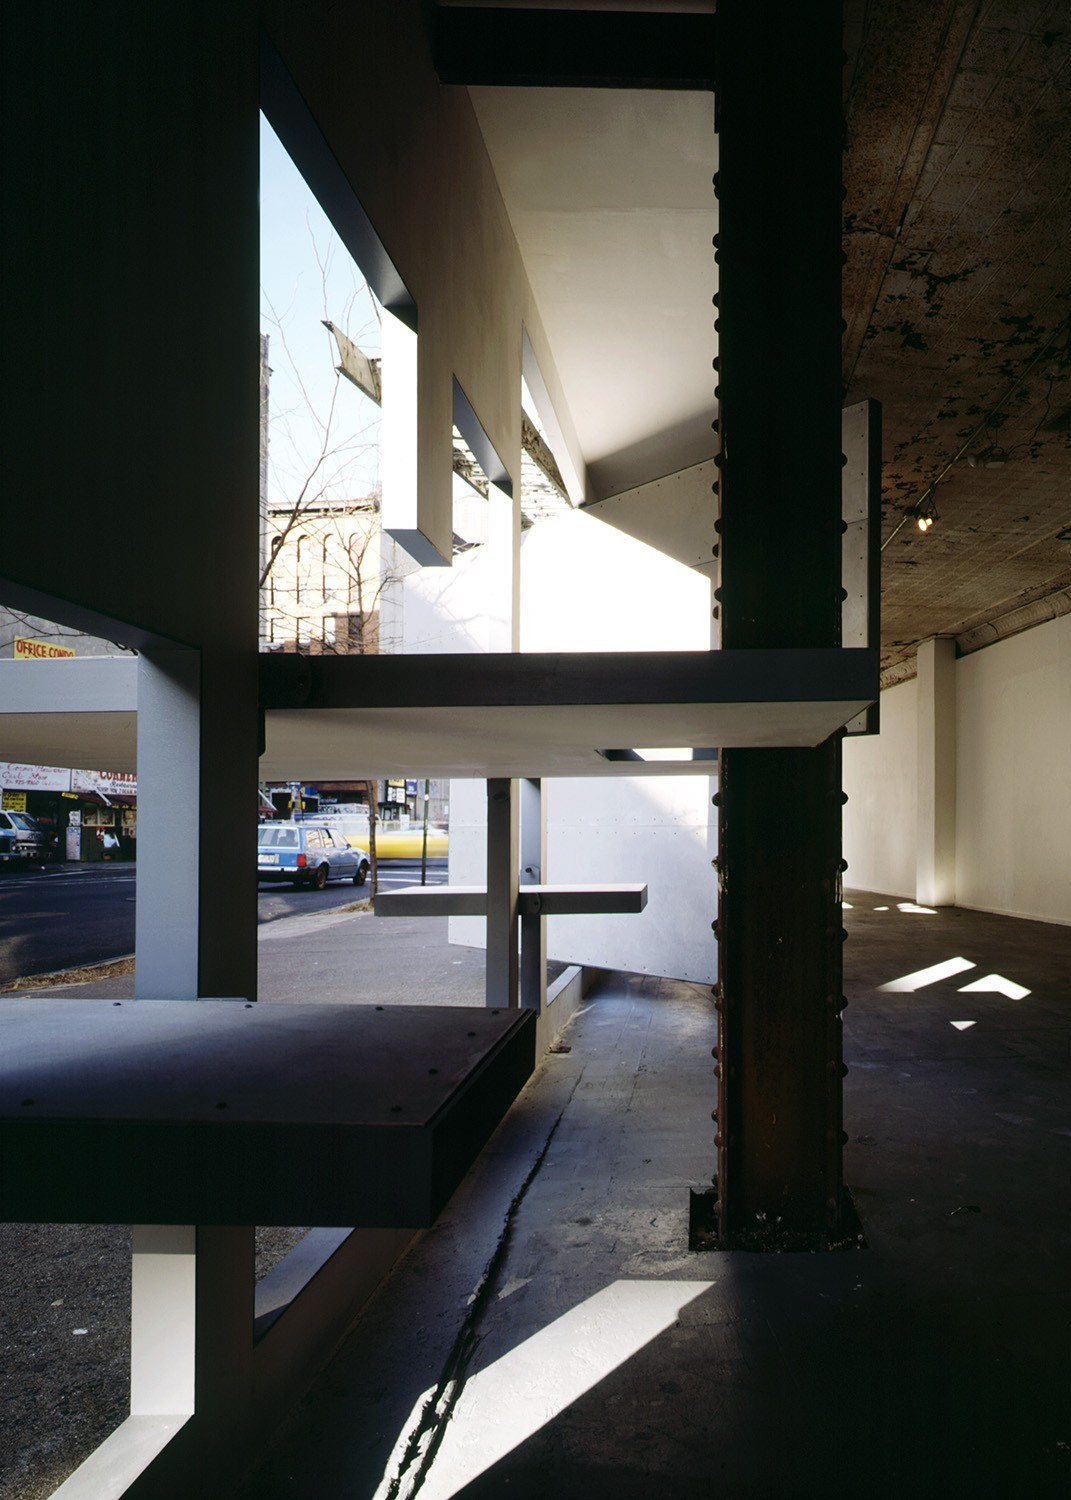 Storefront For Art And Architecture Steven Holl Architects